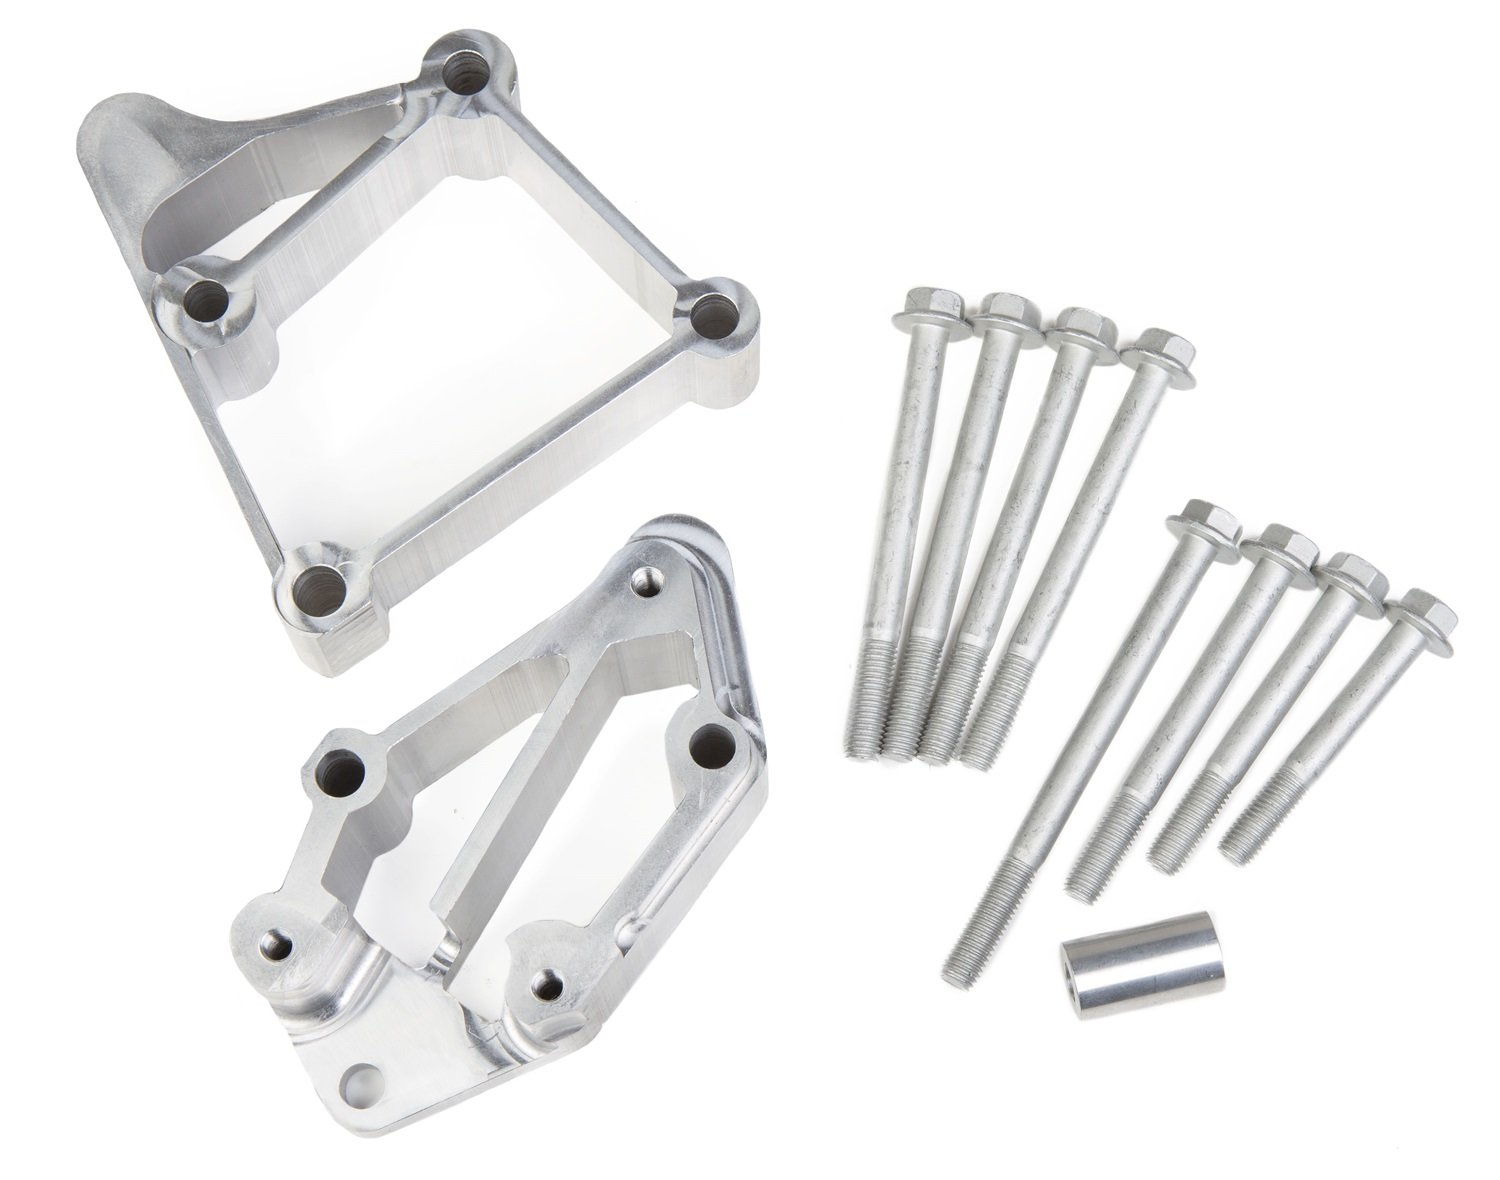 Holley 21-3 LS Accessory Drive Bracket Kit by Holley (Image #1)